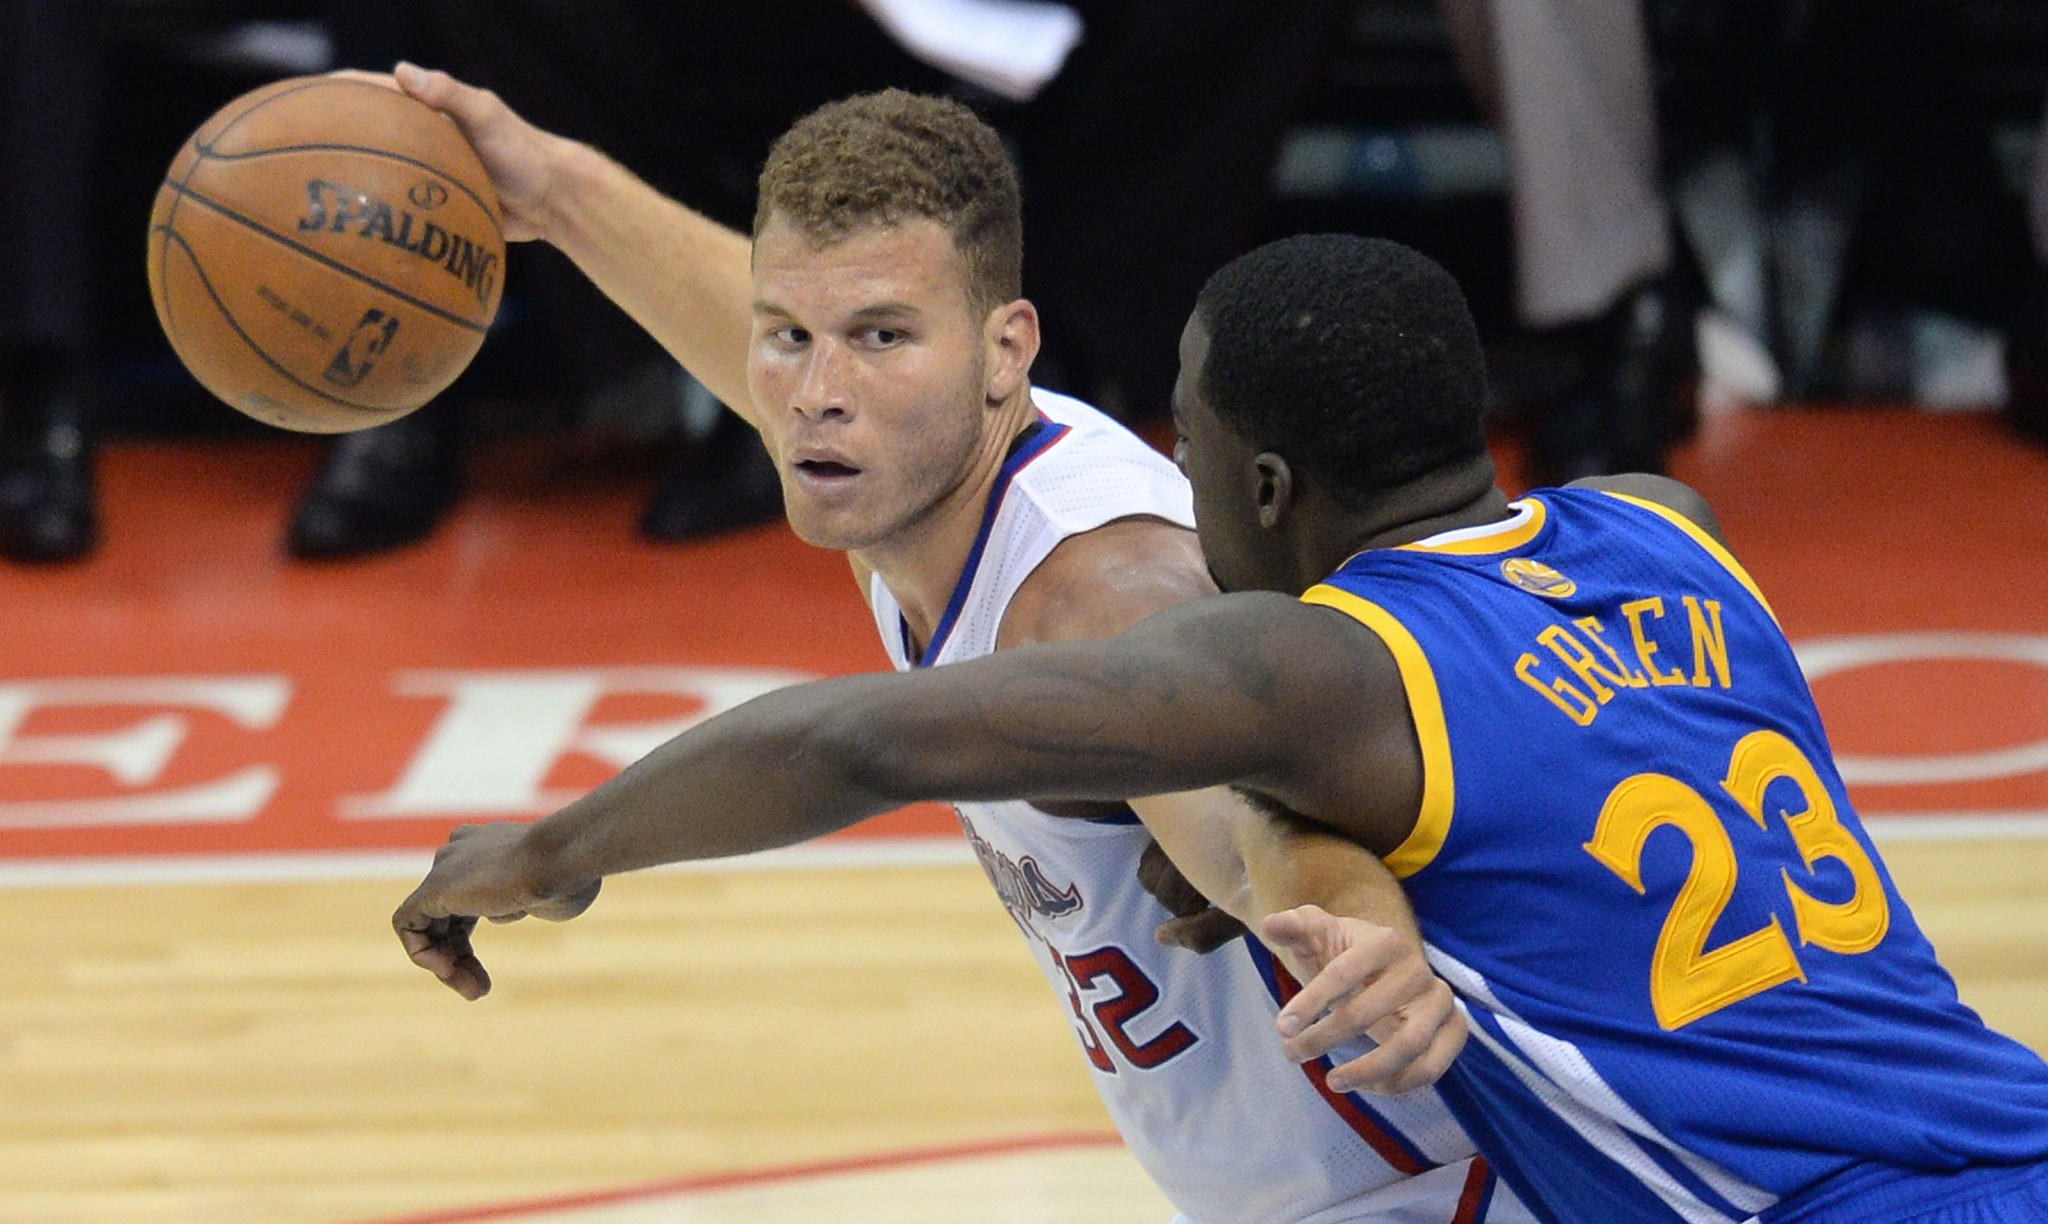 Clippers power forward Blake Griffin, left, keeps the ball away from Golden State Warriors forward Draymond Green during the Clippers' blowout victory in Game 2 of the NBA Western Conference quarterfinals Monday.